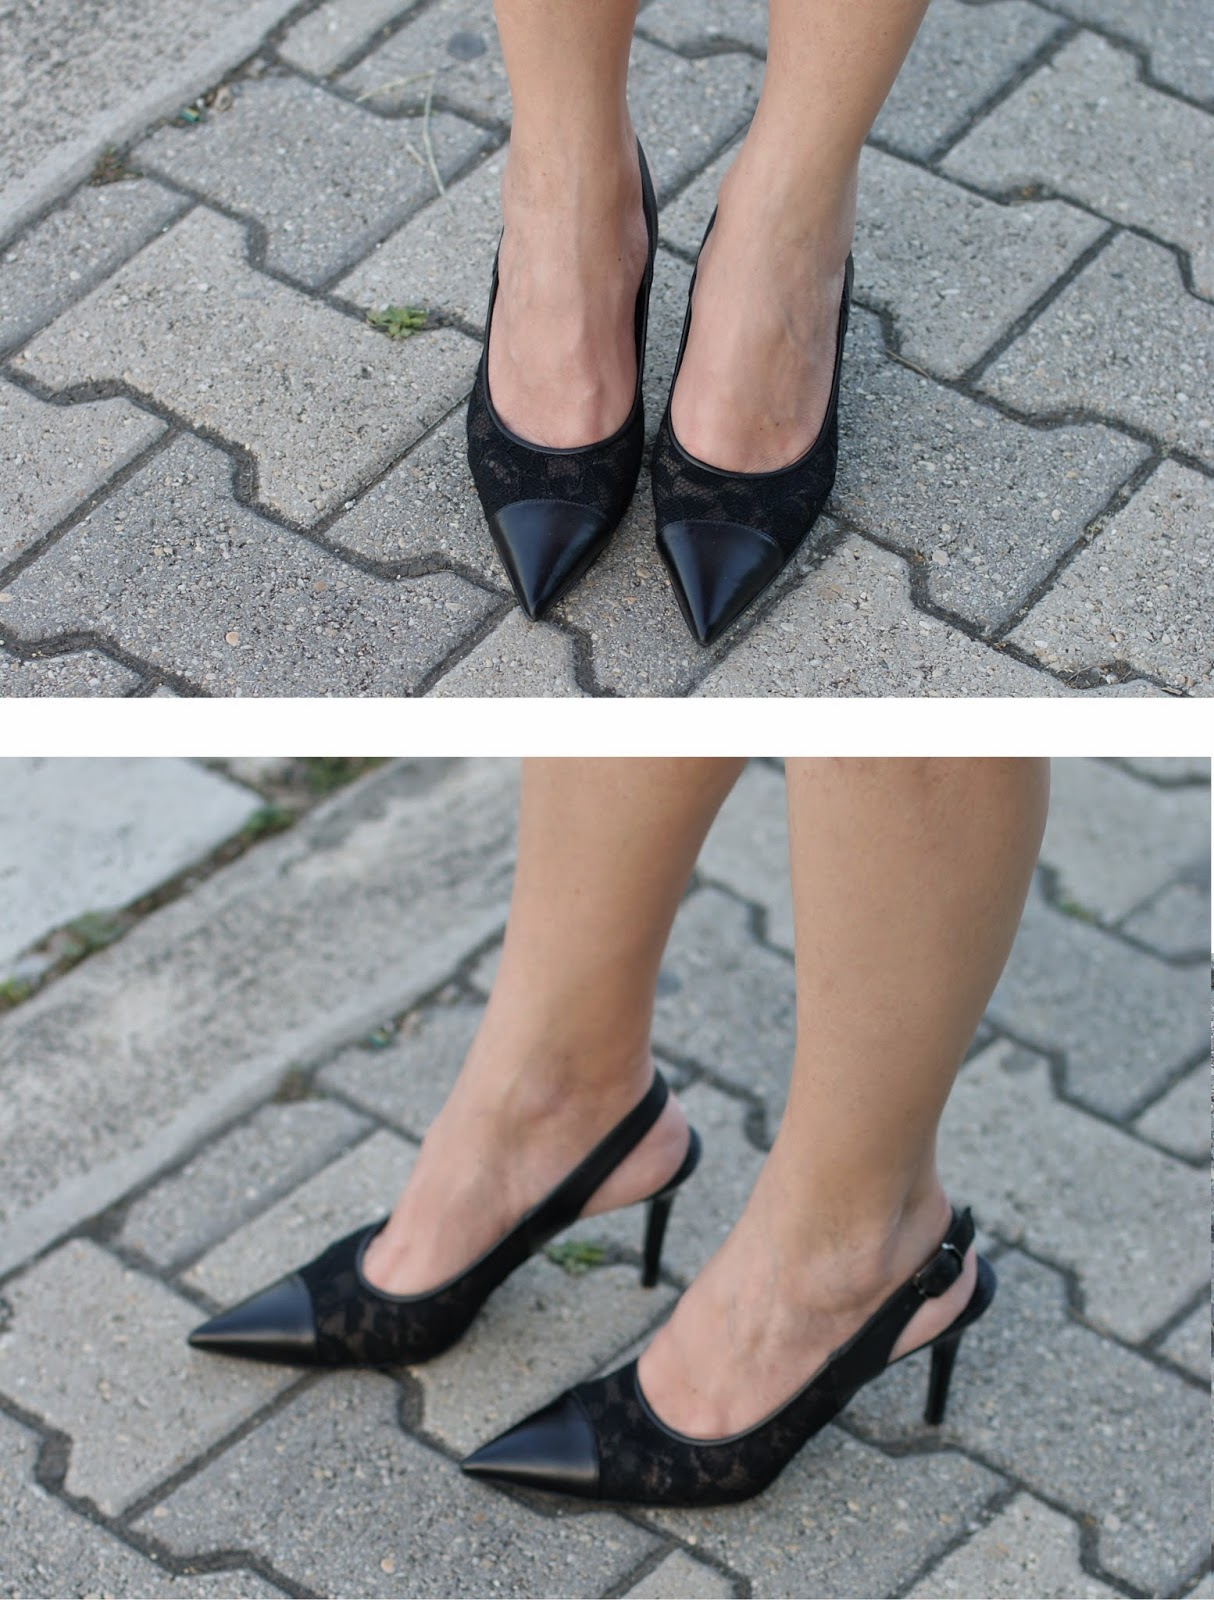 Nando Muzi shoes, scarpe pizzo e pelle, Fashion and Cookies, fashion blogger